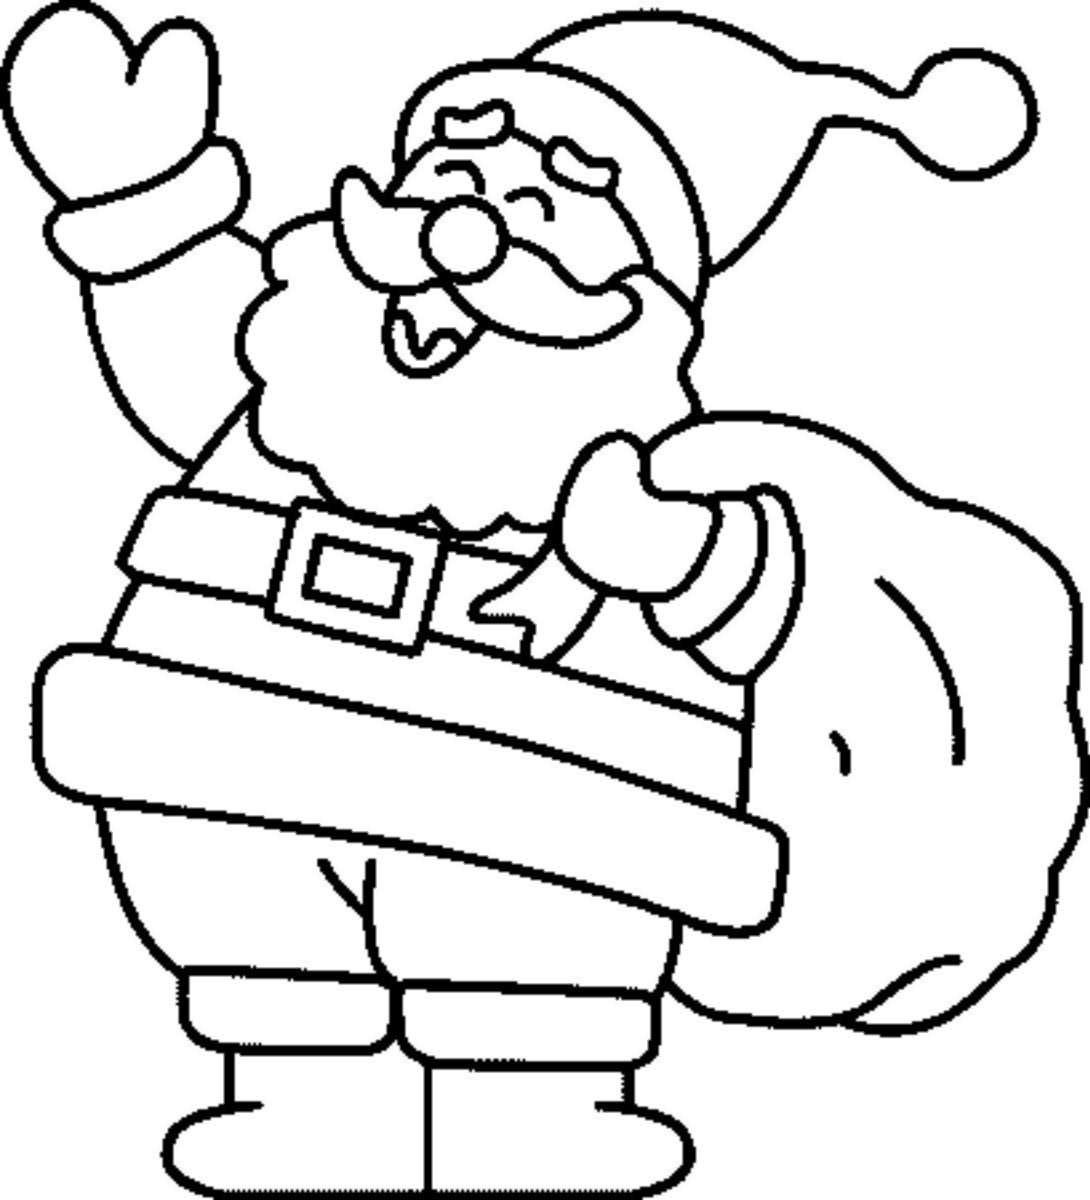 Christmas Coloring Pages Santa Coloring Pages Free Christmas Coloring Pages Christmas Coloring Sheets